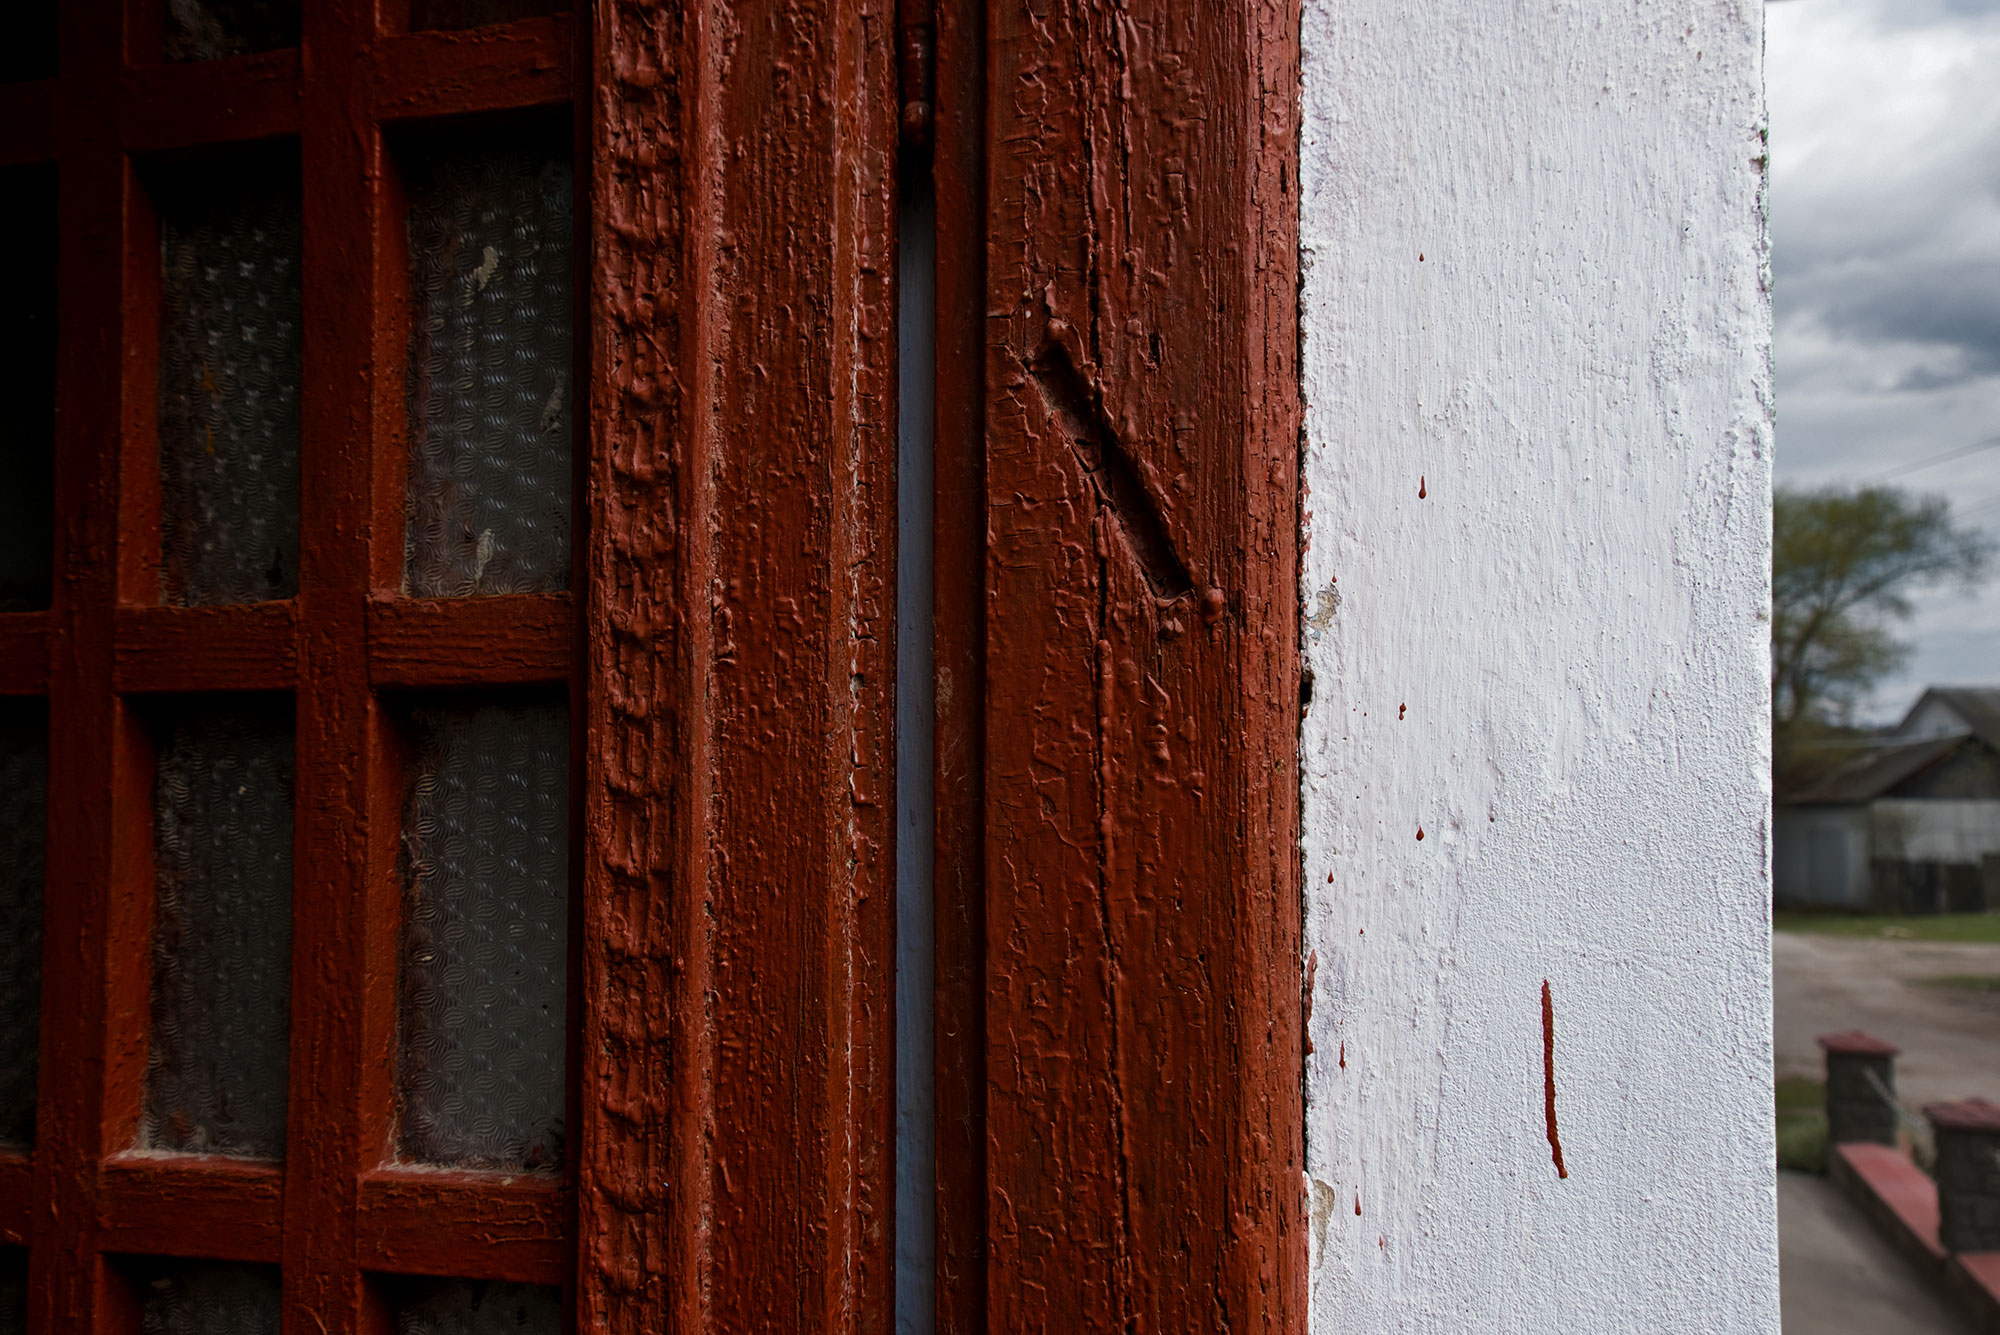 Pidhaitsi Galicia in Ukraine u2013 trace of a mezuzah at the door frame of house in the former Jewish quarter & Pidhaitsi Galicia in Ukraine u2013 trace of a mezuzah at the door frame ...